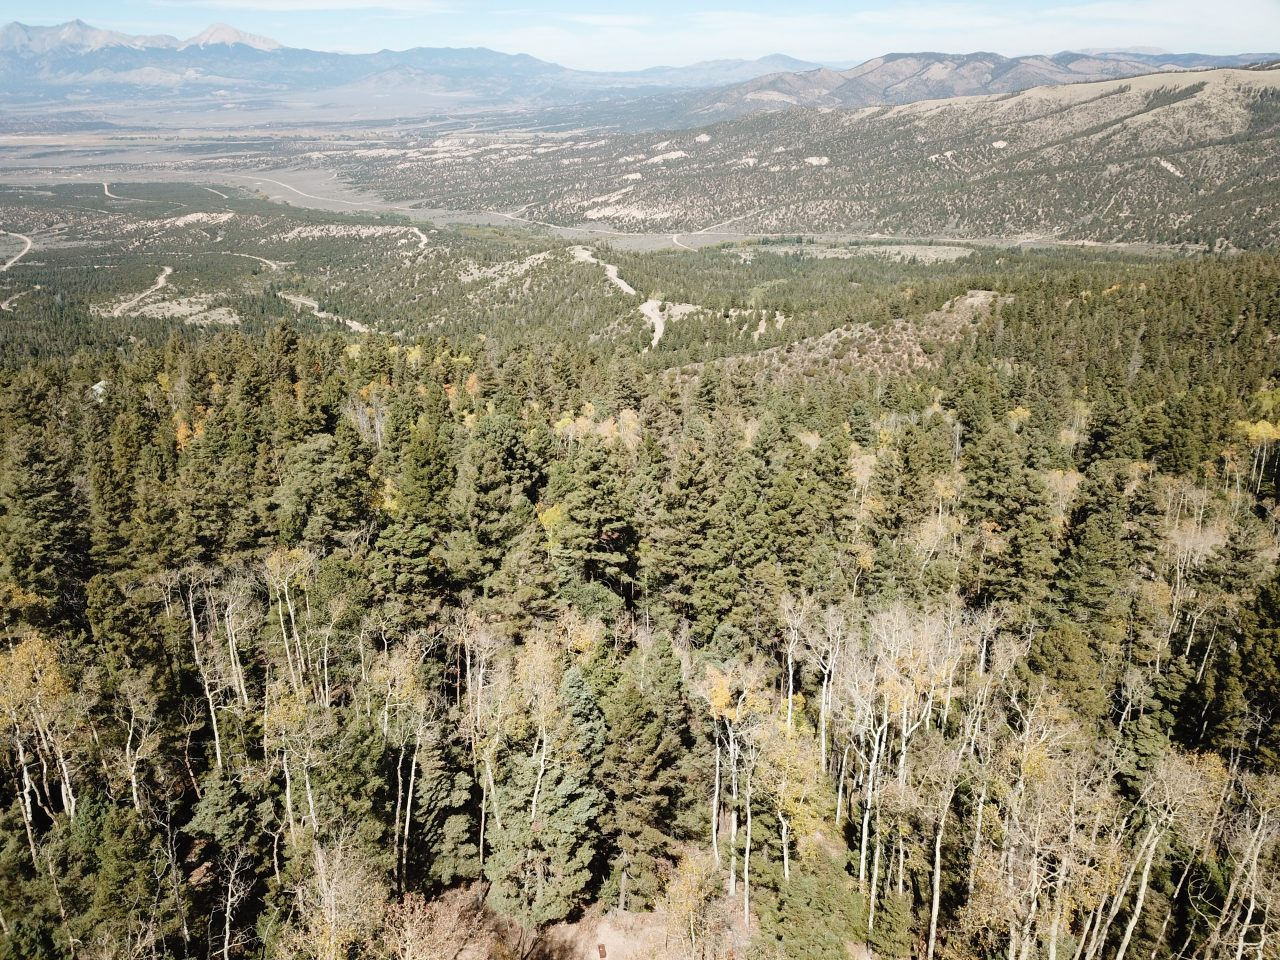 Just Listed — 5ac of Lush CO Mountains